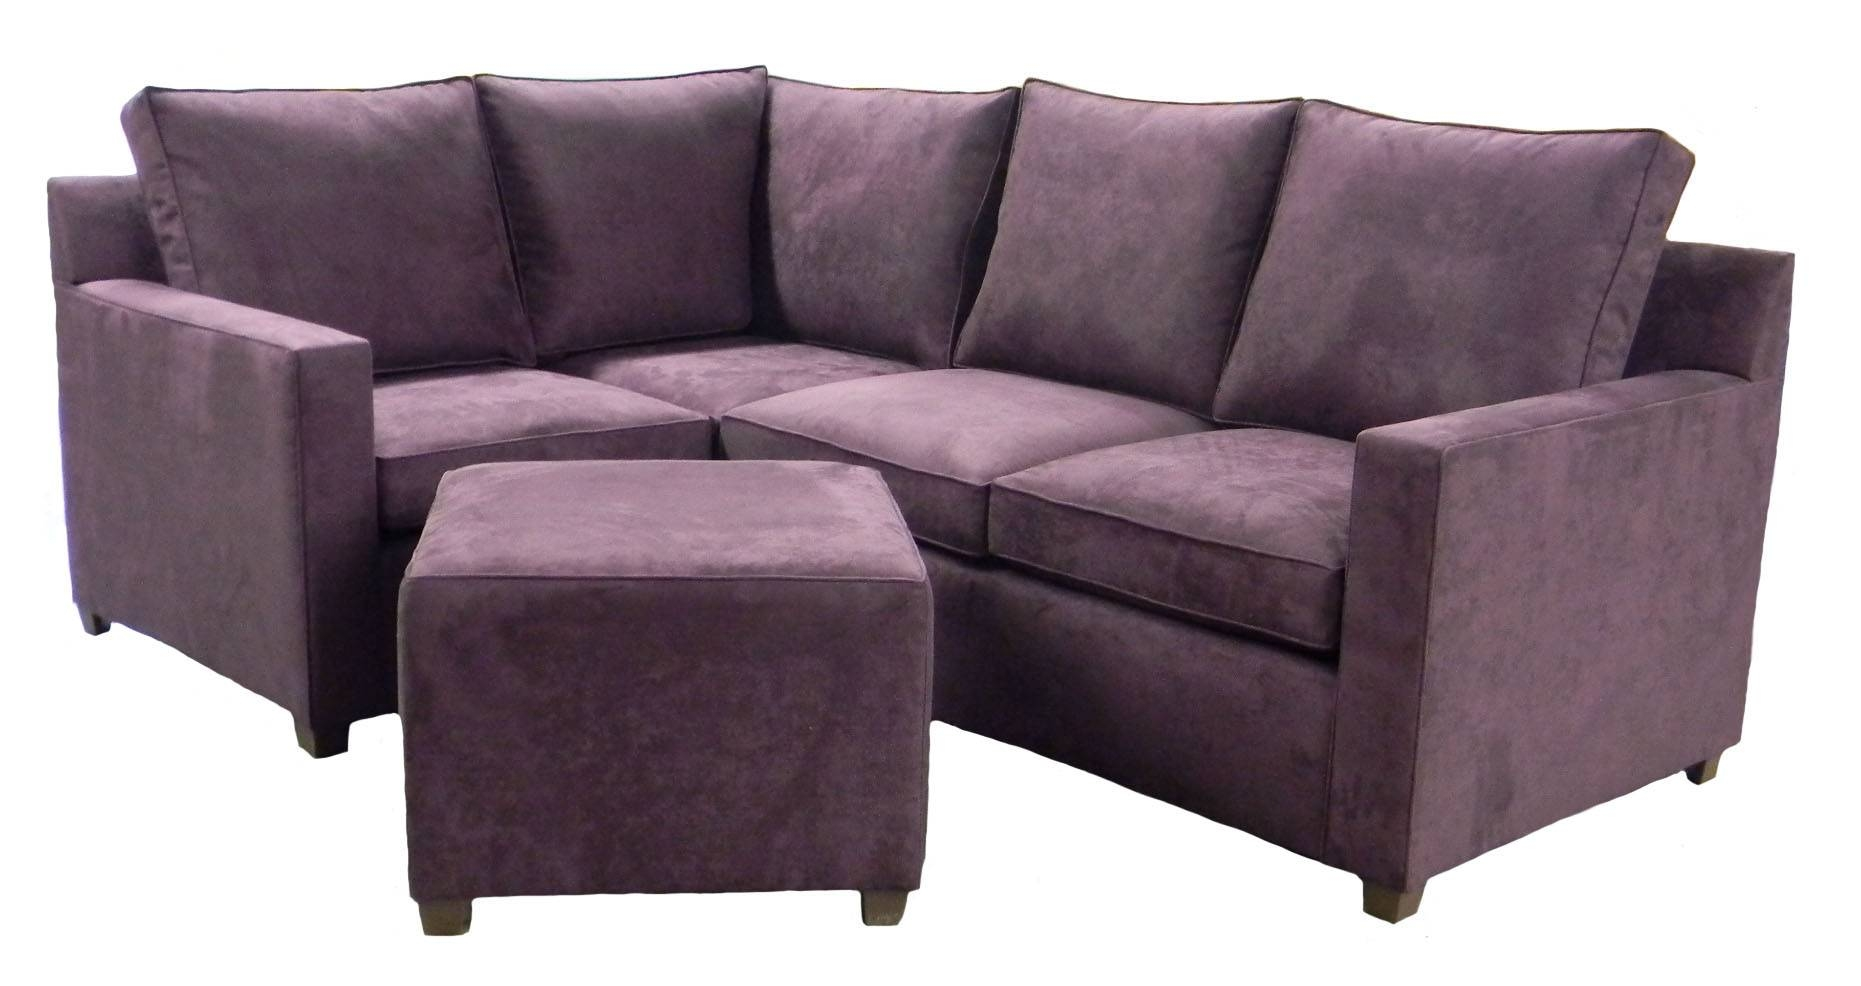 Furniture : Breathtaking Mini Sectional Sofa With Chic Design with Mini Sectional Sofas (Image 9 of 30)